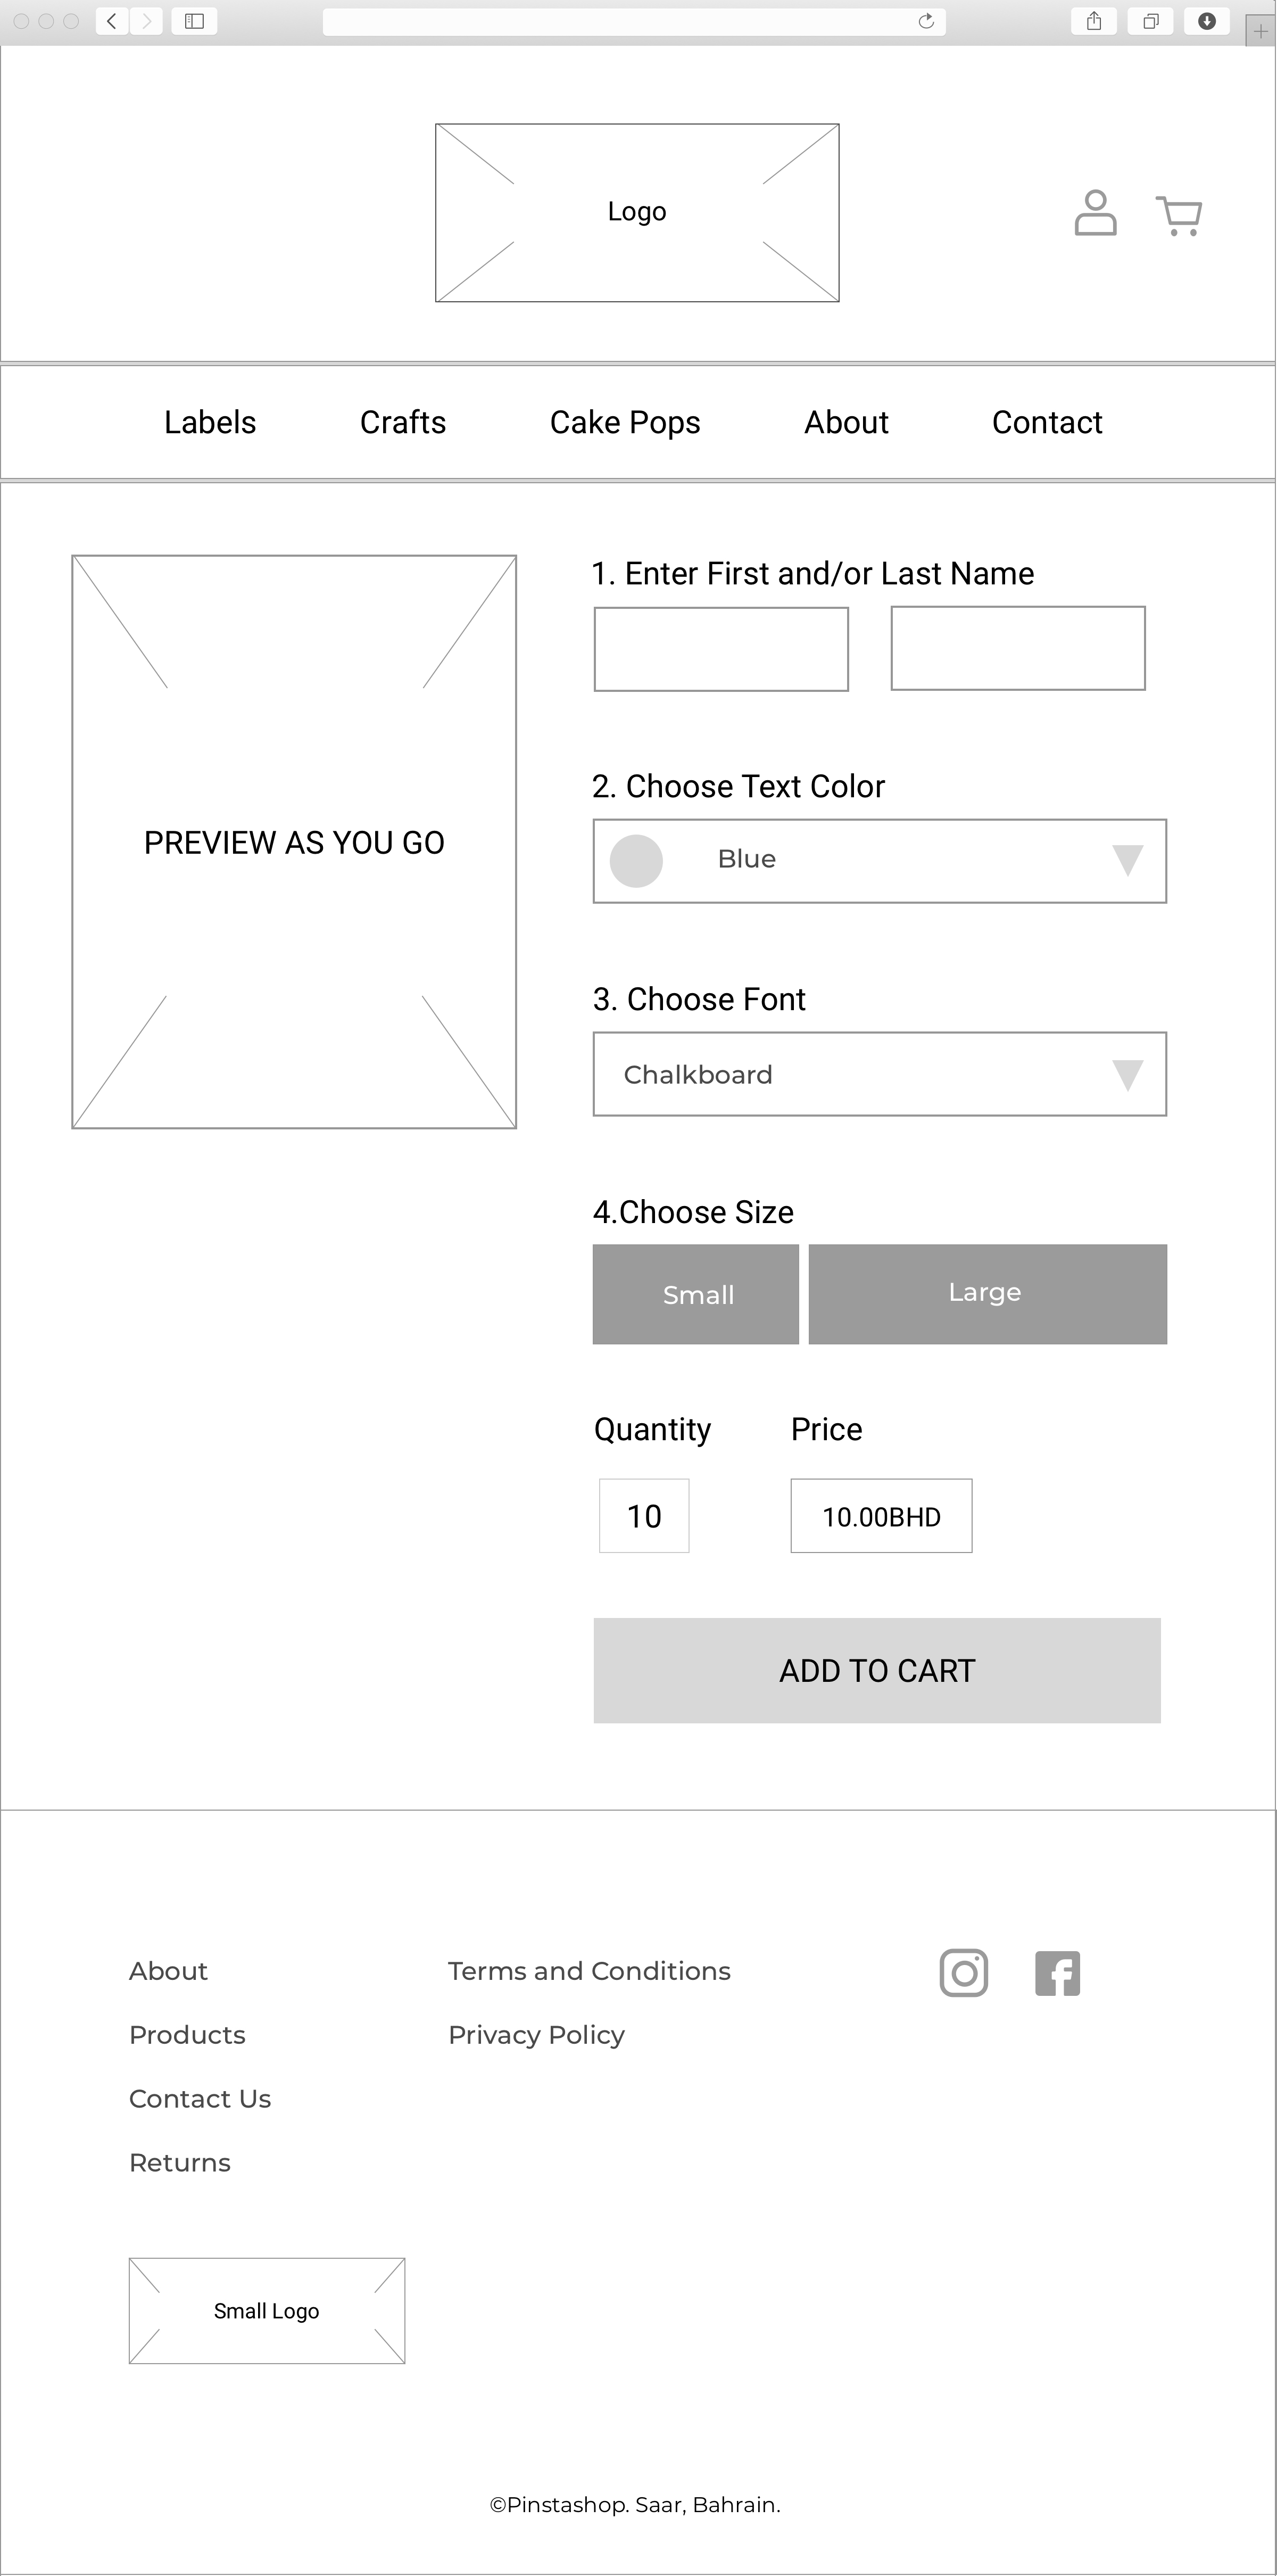 Label Ordering Page